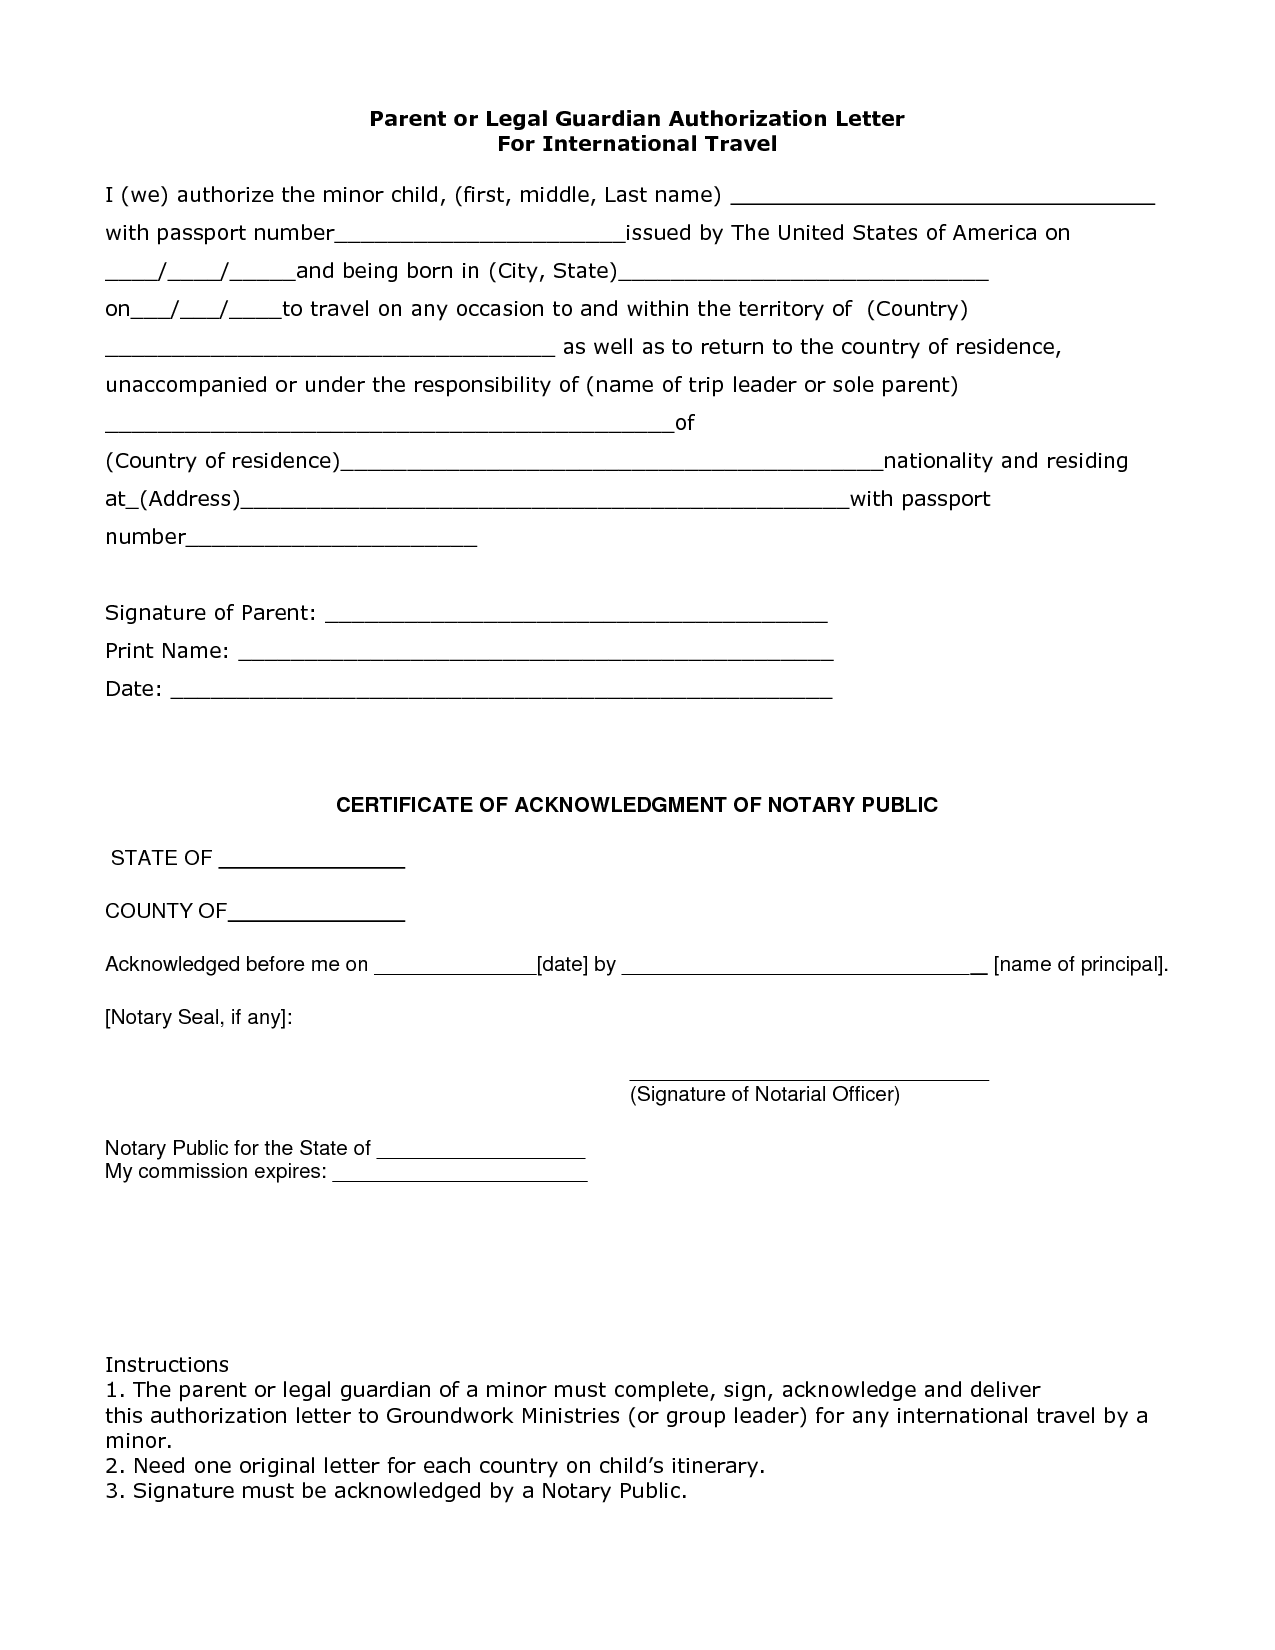 Affidavit Of Facts Template Letter Example Legal Guardianship Sample And Forms  Personal .